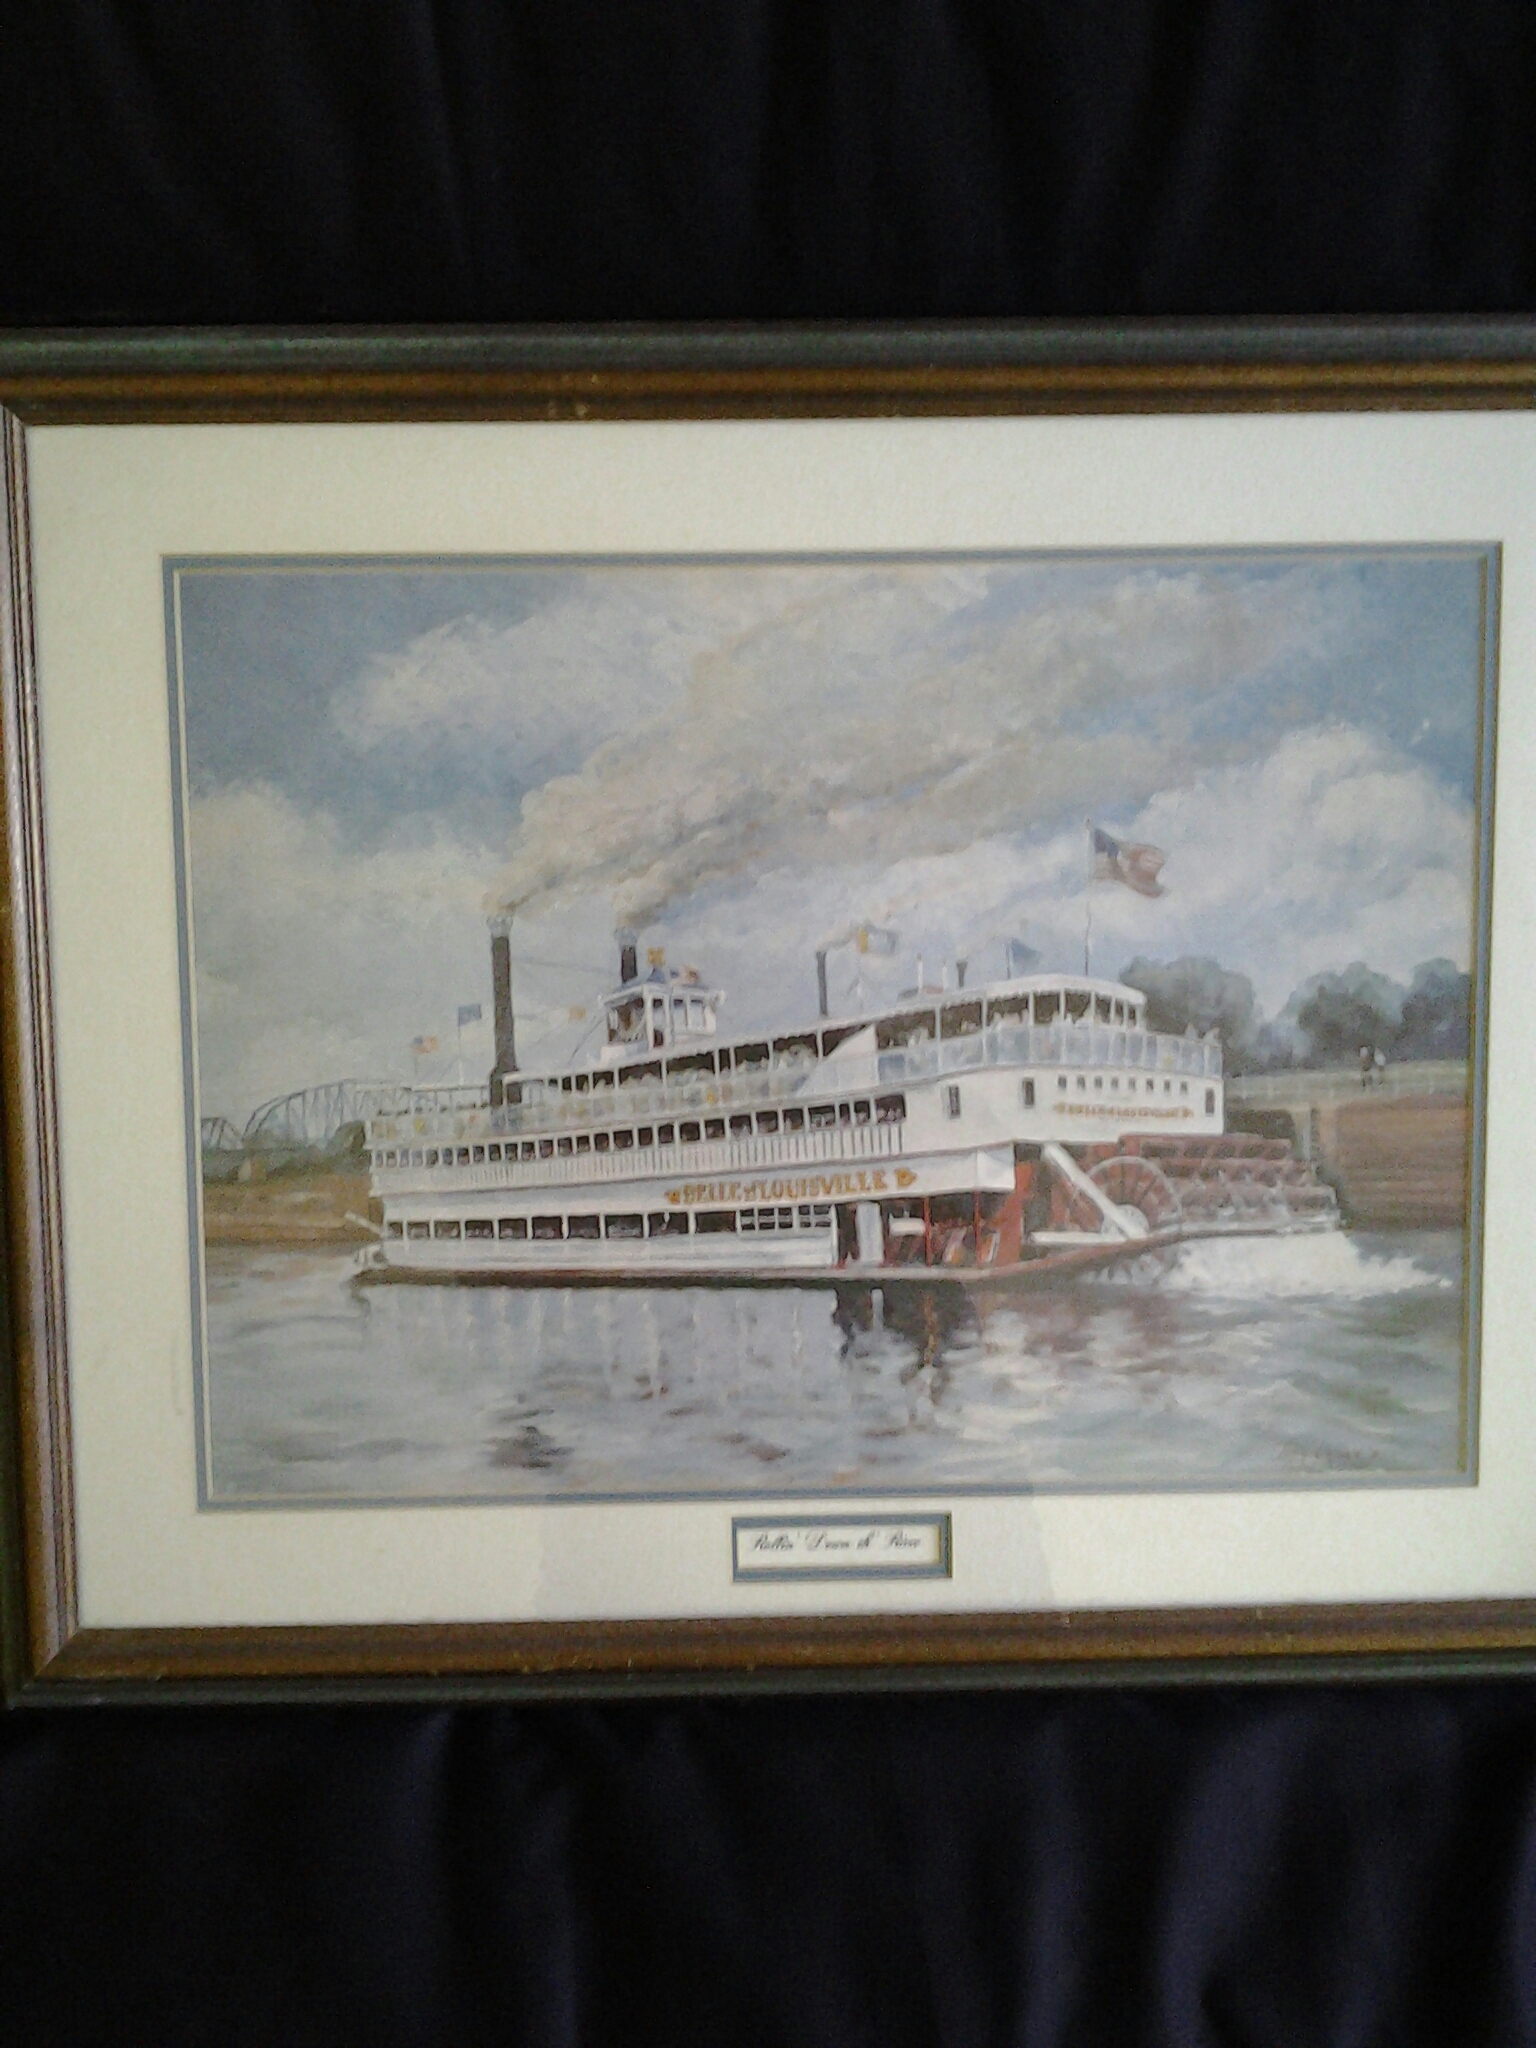 Bell of louisville painting/framed by Tony Oswald 76